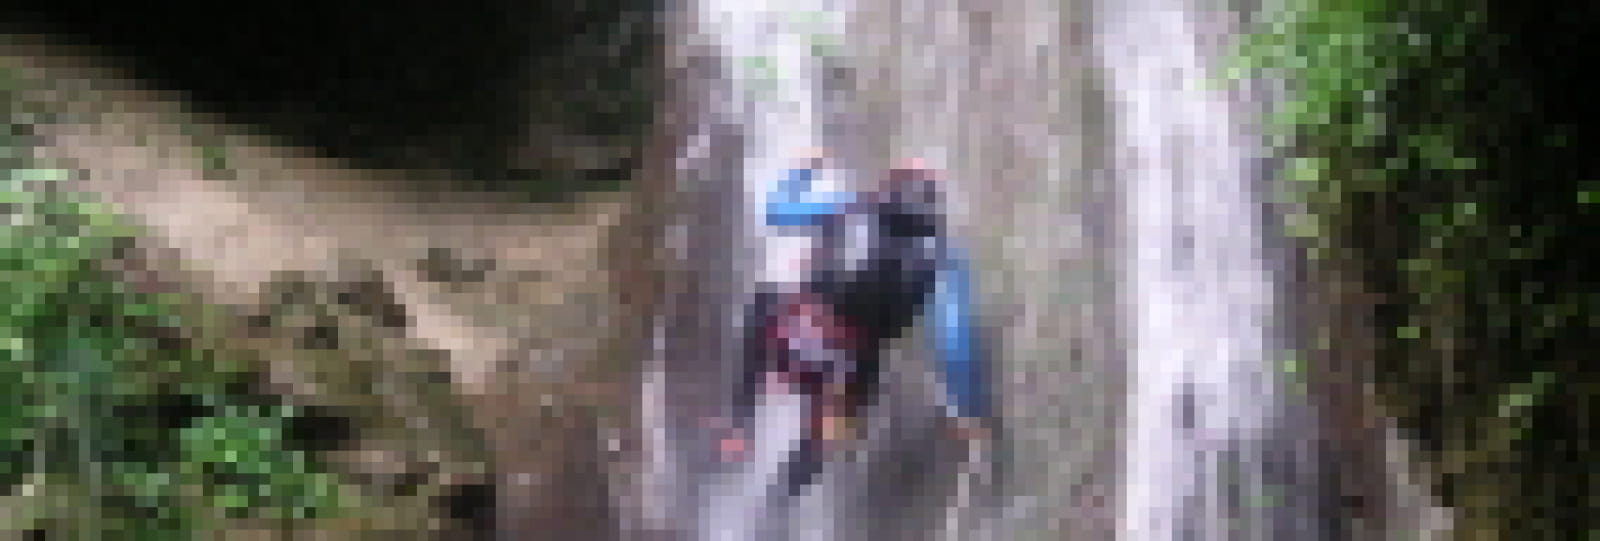 Canyoning Montagnes & Compagnie